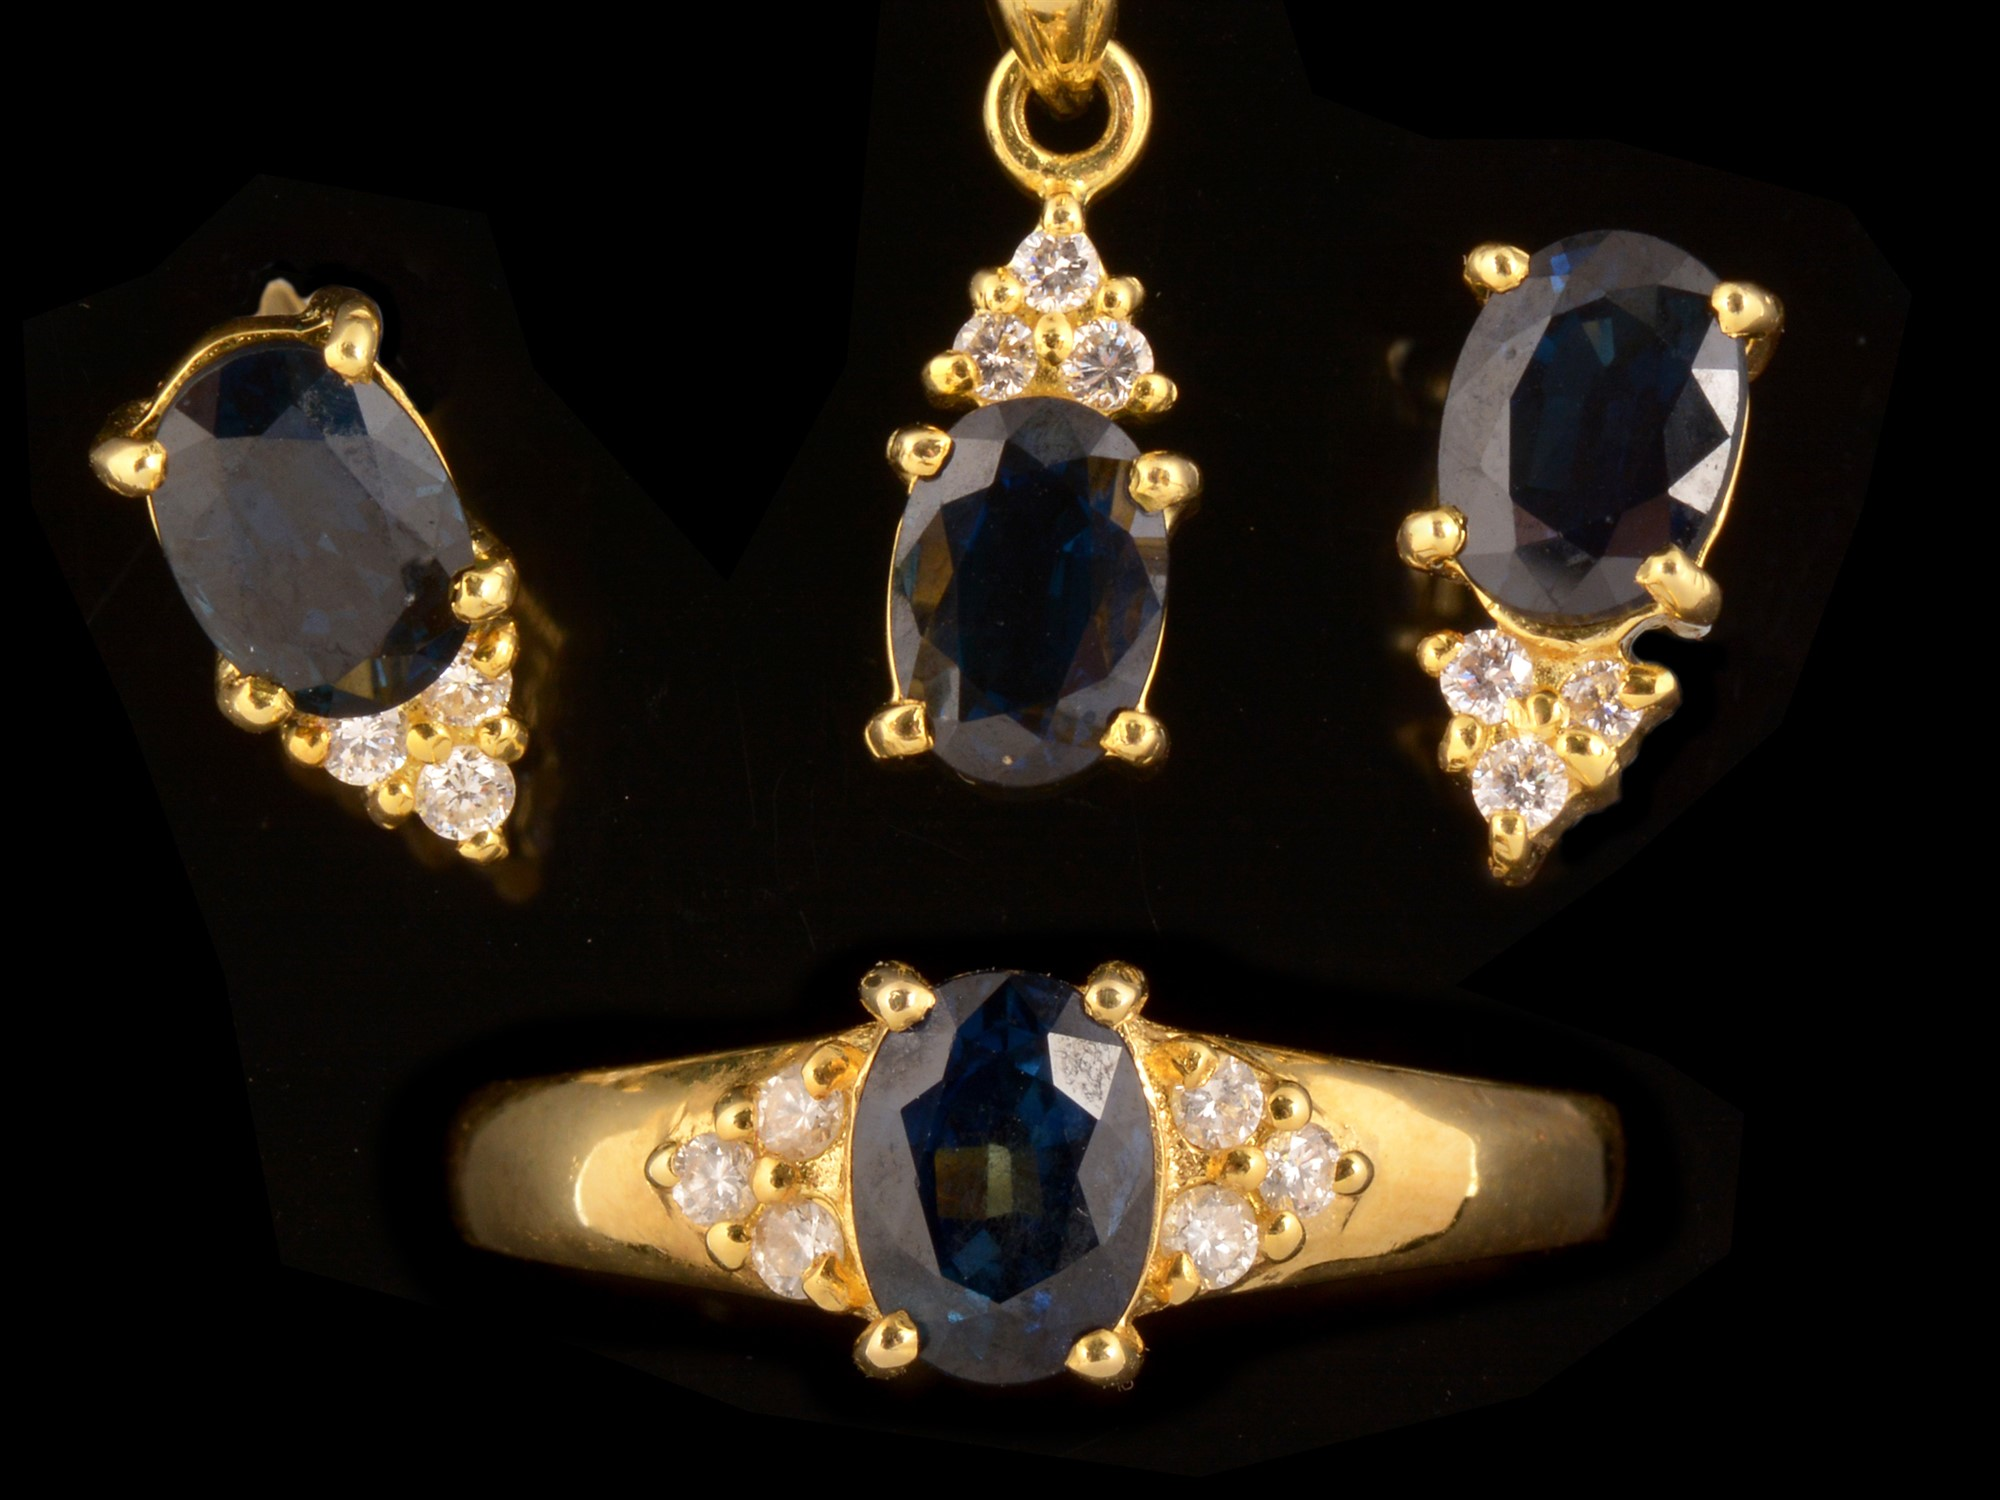 Lot 511 - Sapphire and diamond ring, earrings and pendant